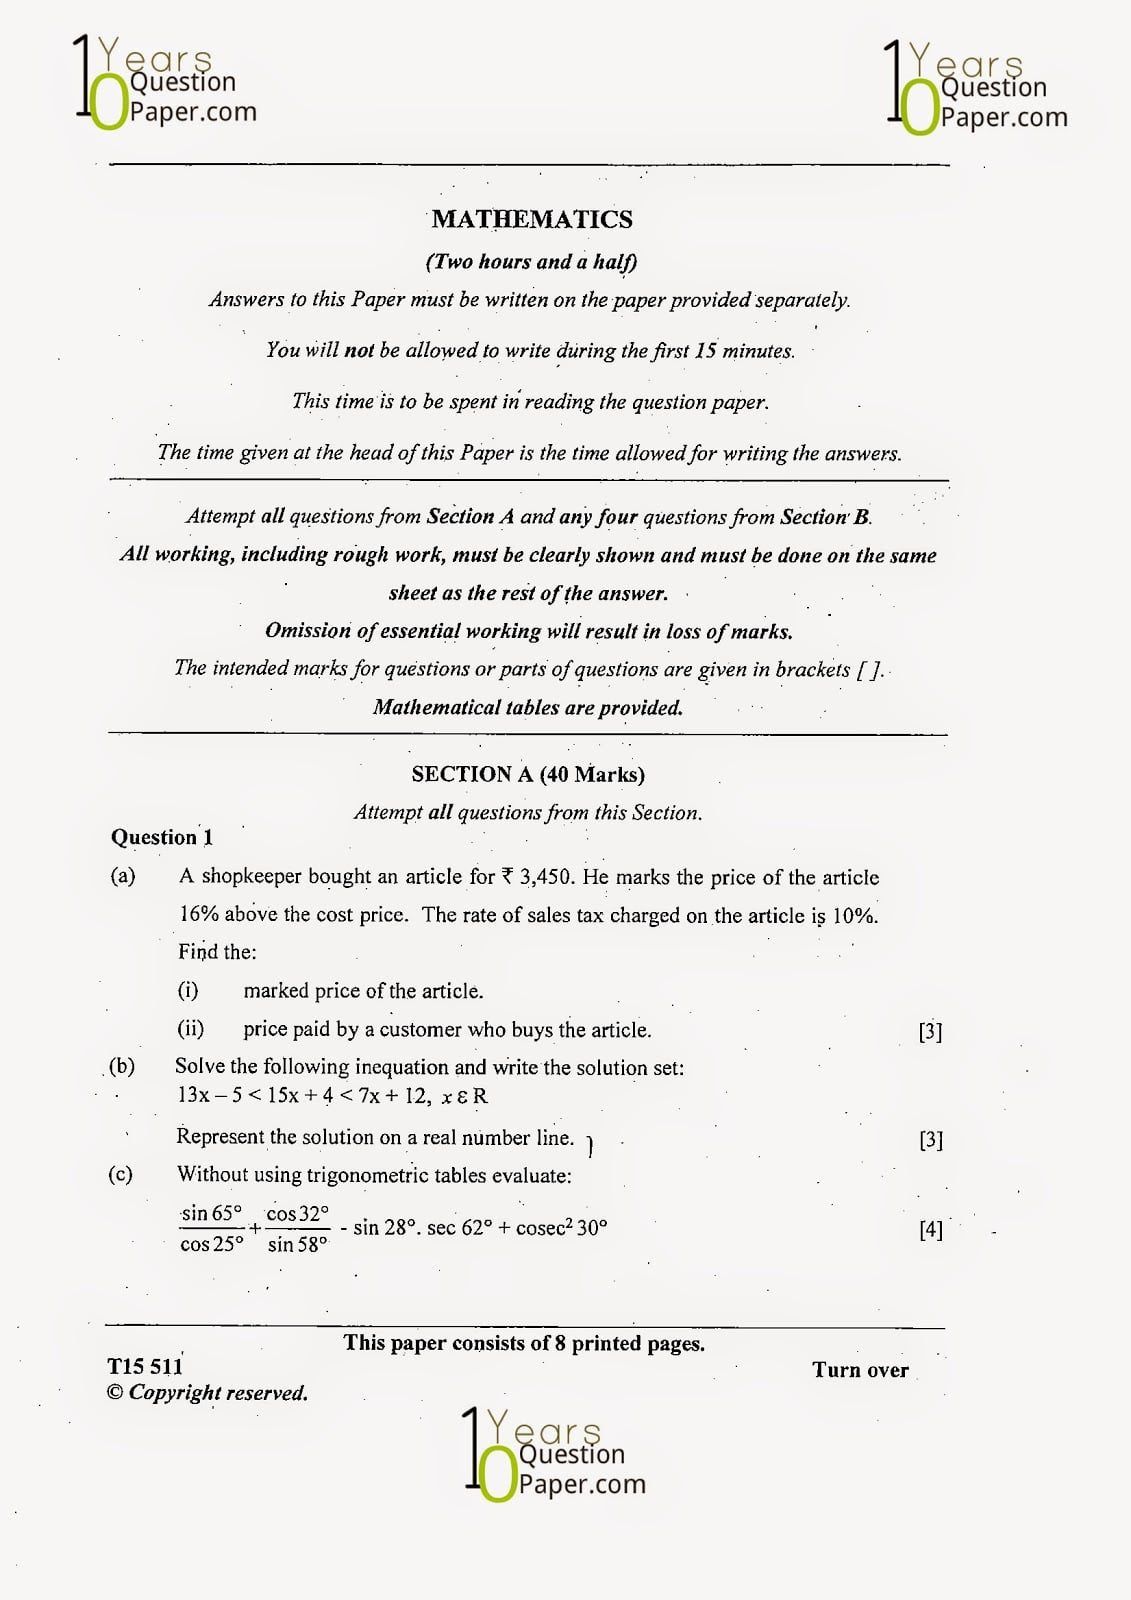 ICSE 2015 Mathematics Question Paper for Class 10